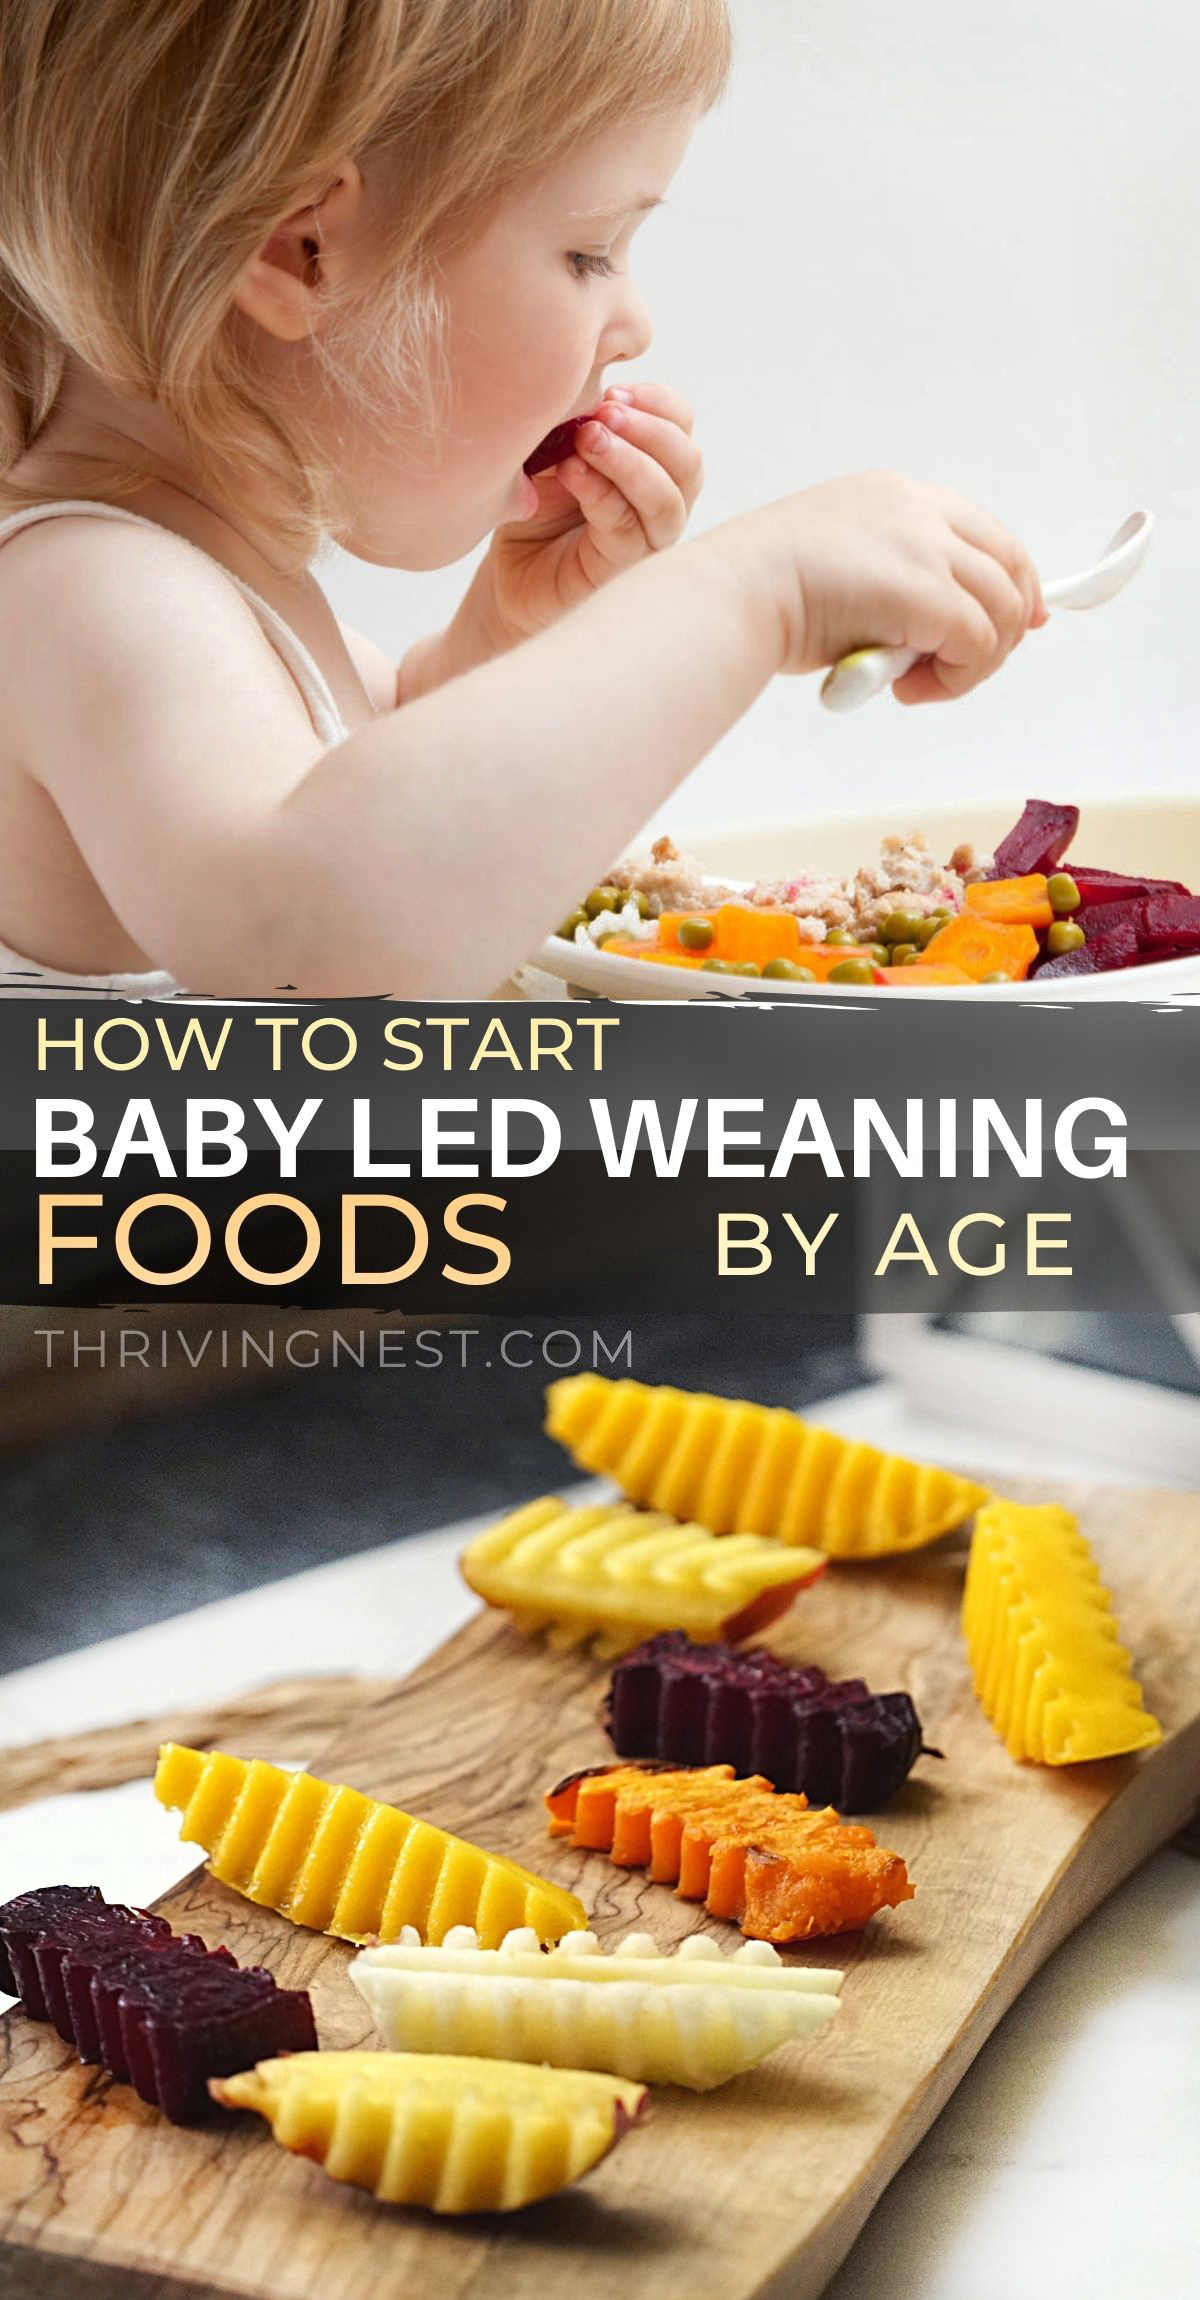 Want to start baby led weaning and don't know how? Here is a list of best baby led weaning foods to start with according to age. See benefits of BLW vs purees. Also blw books and referencing studies, baby led weaning recipes and starter foods, all in one place. #babyledweaning #blw #firstfood #babyfood #starterfood #6monthold #startingsolids.